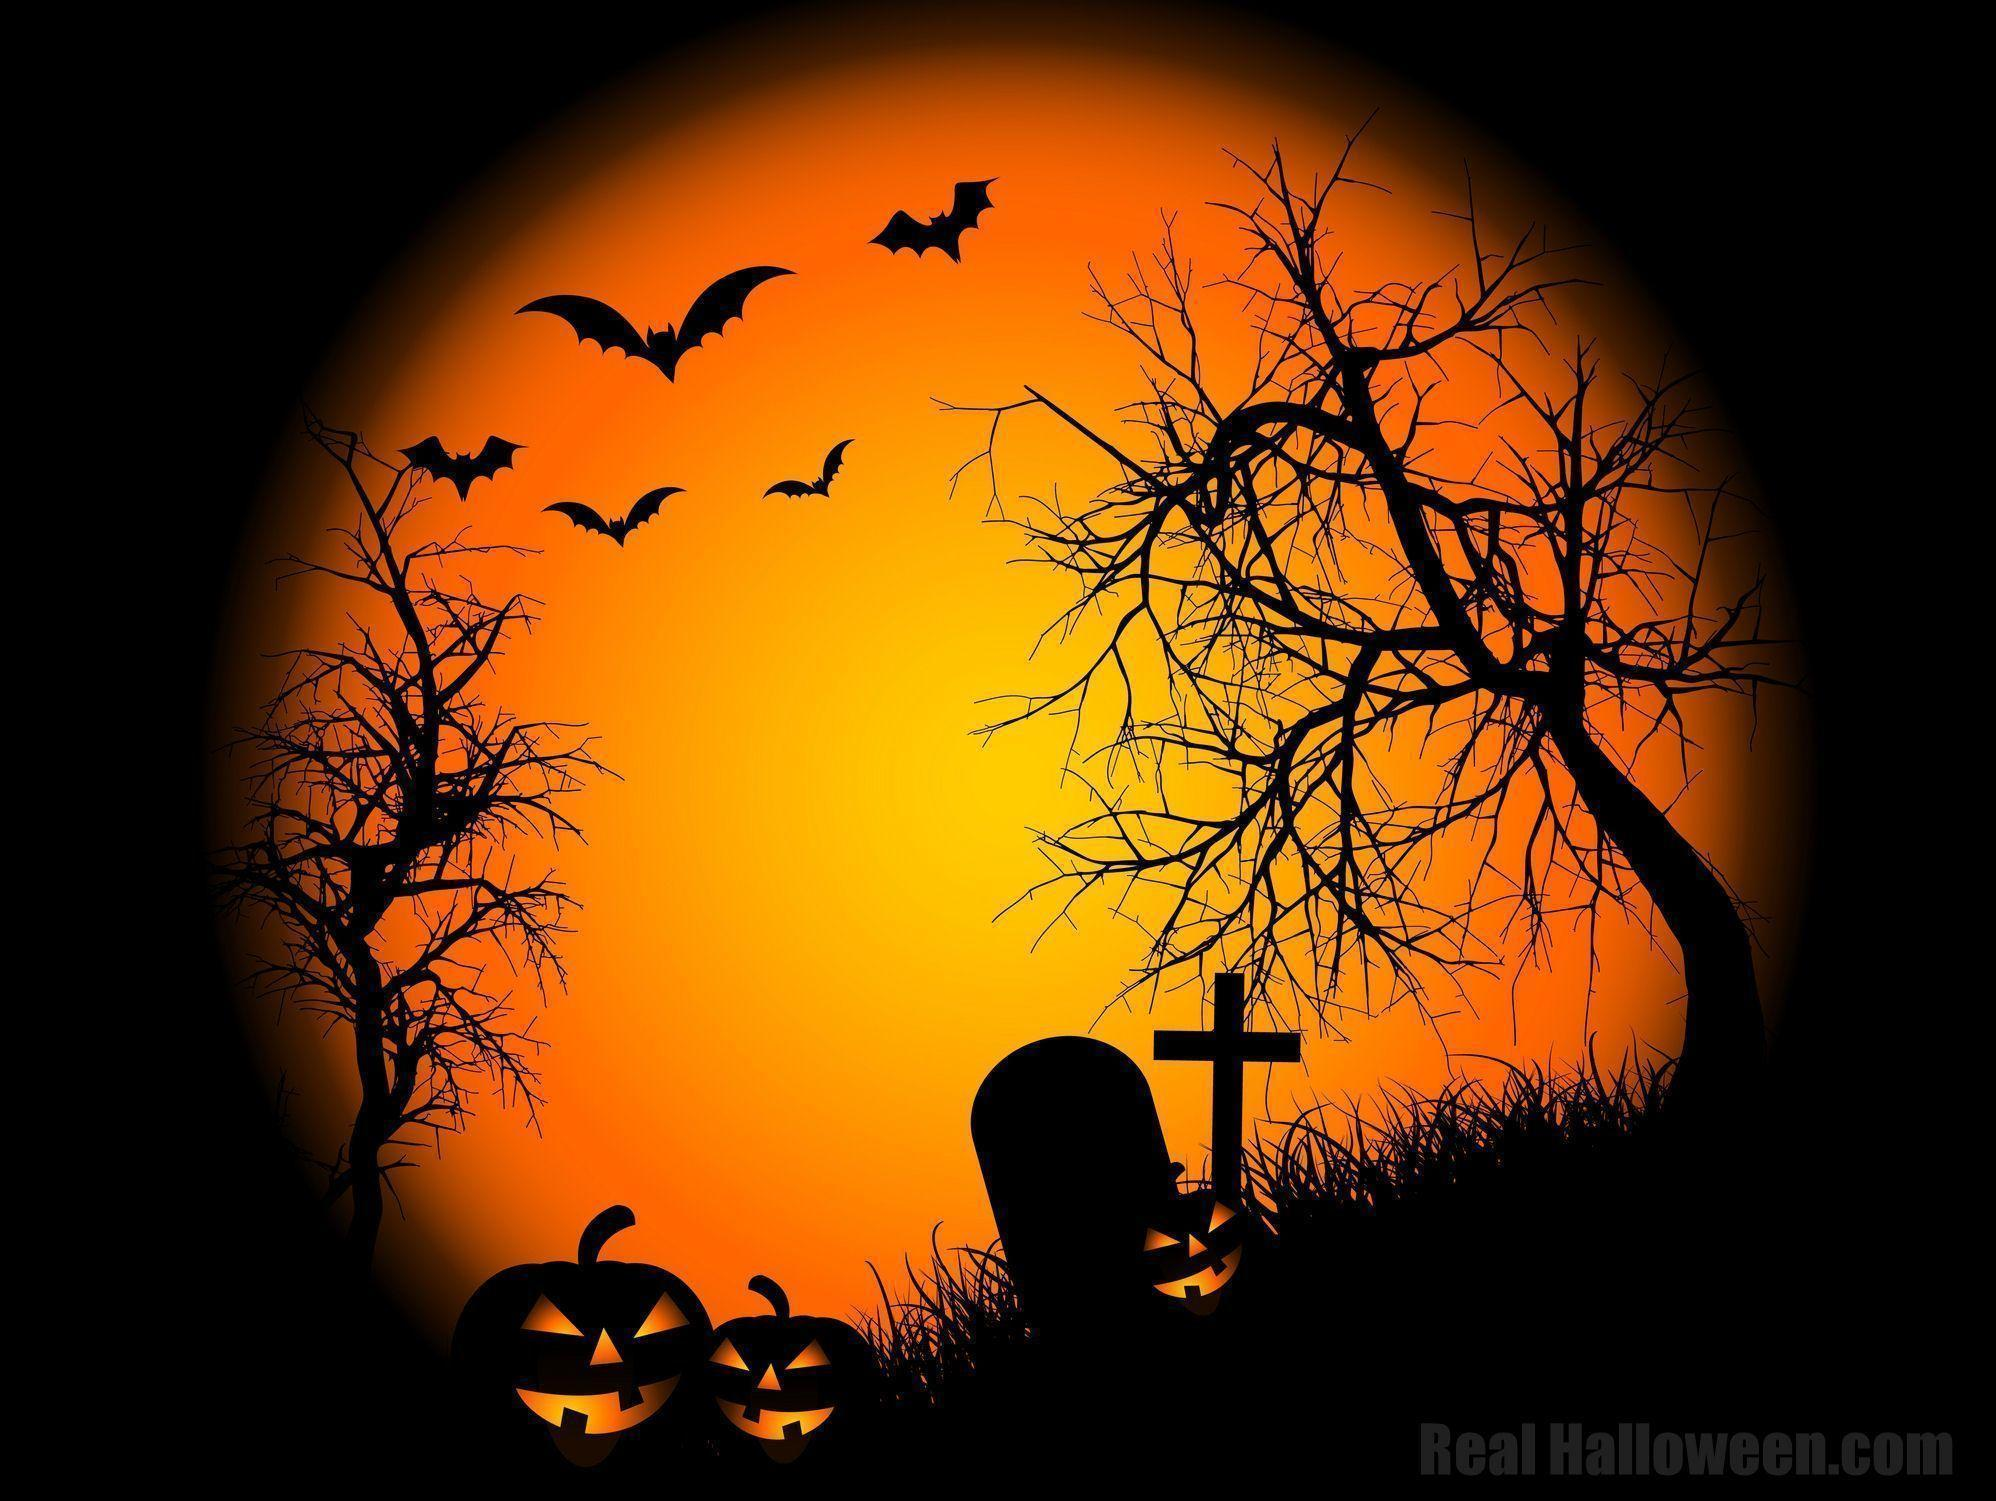 Halloween Backgrounds For Pictures - Wallpaper Cave